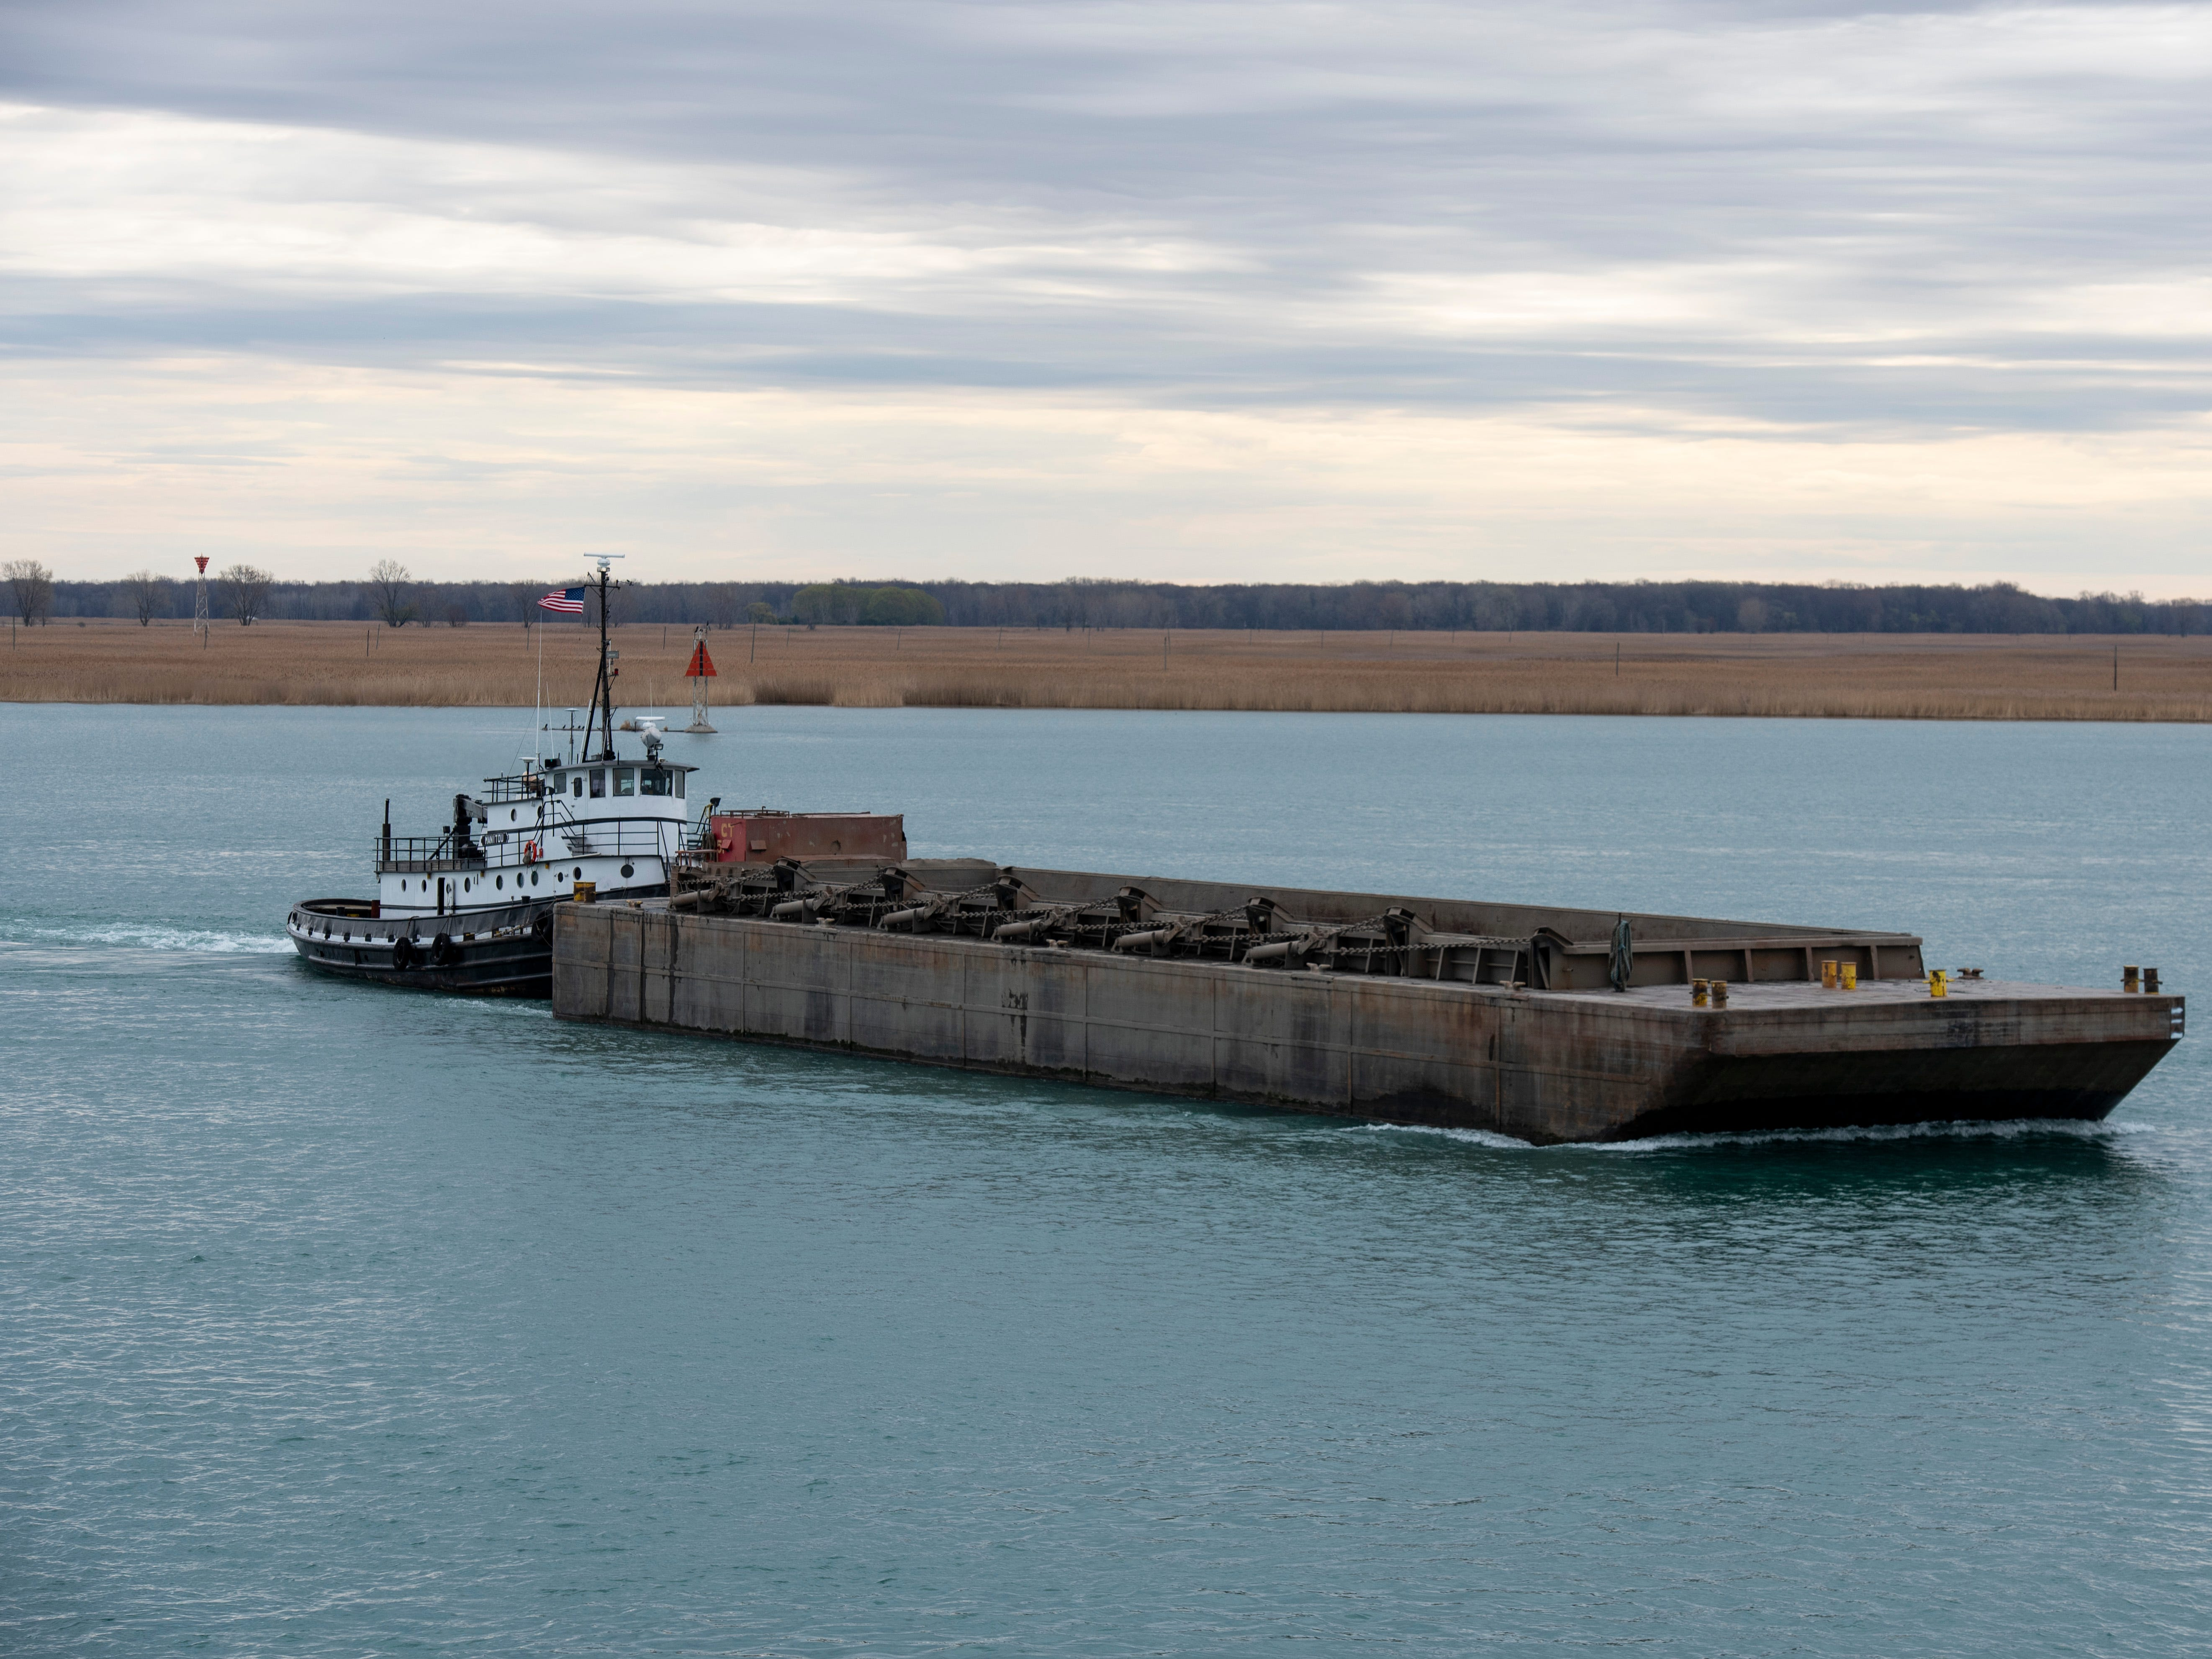 The tug Manitou, owned by Malcolm Marine, Inc., pushes a small barge past the USCGC Hollyhock Thursday morning, April 25, 2019 on the St. Clair River.